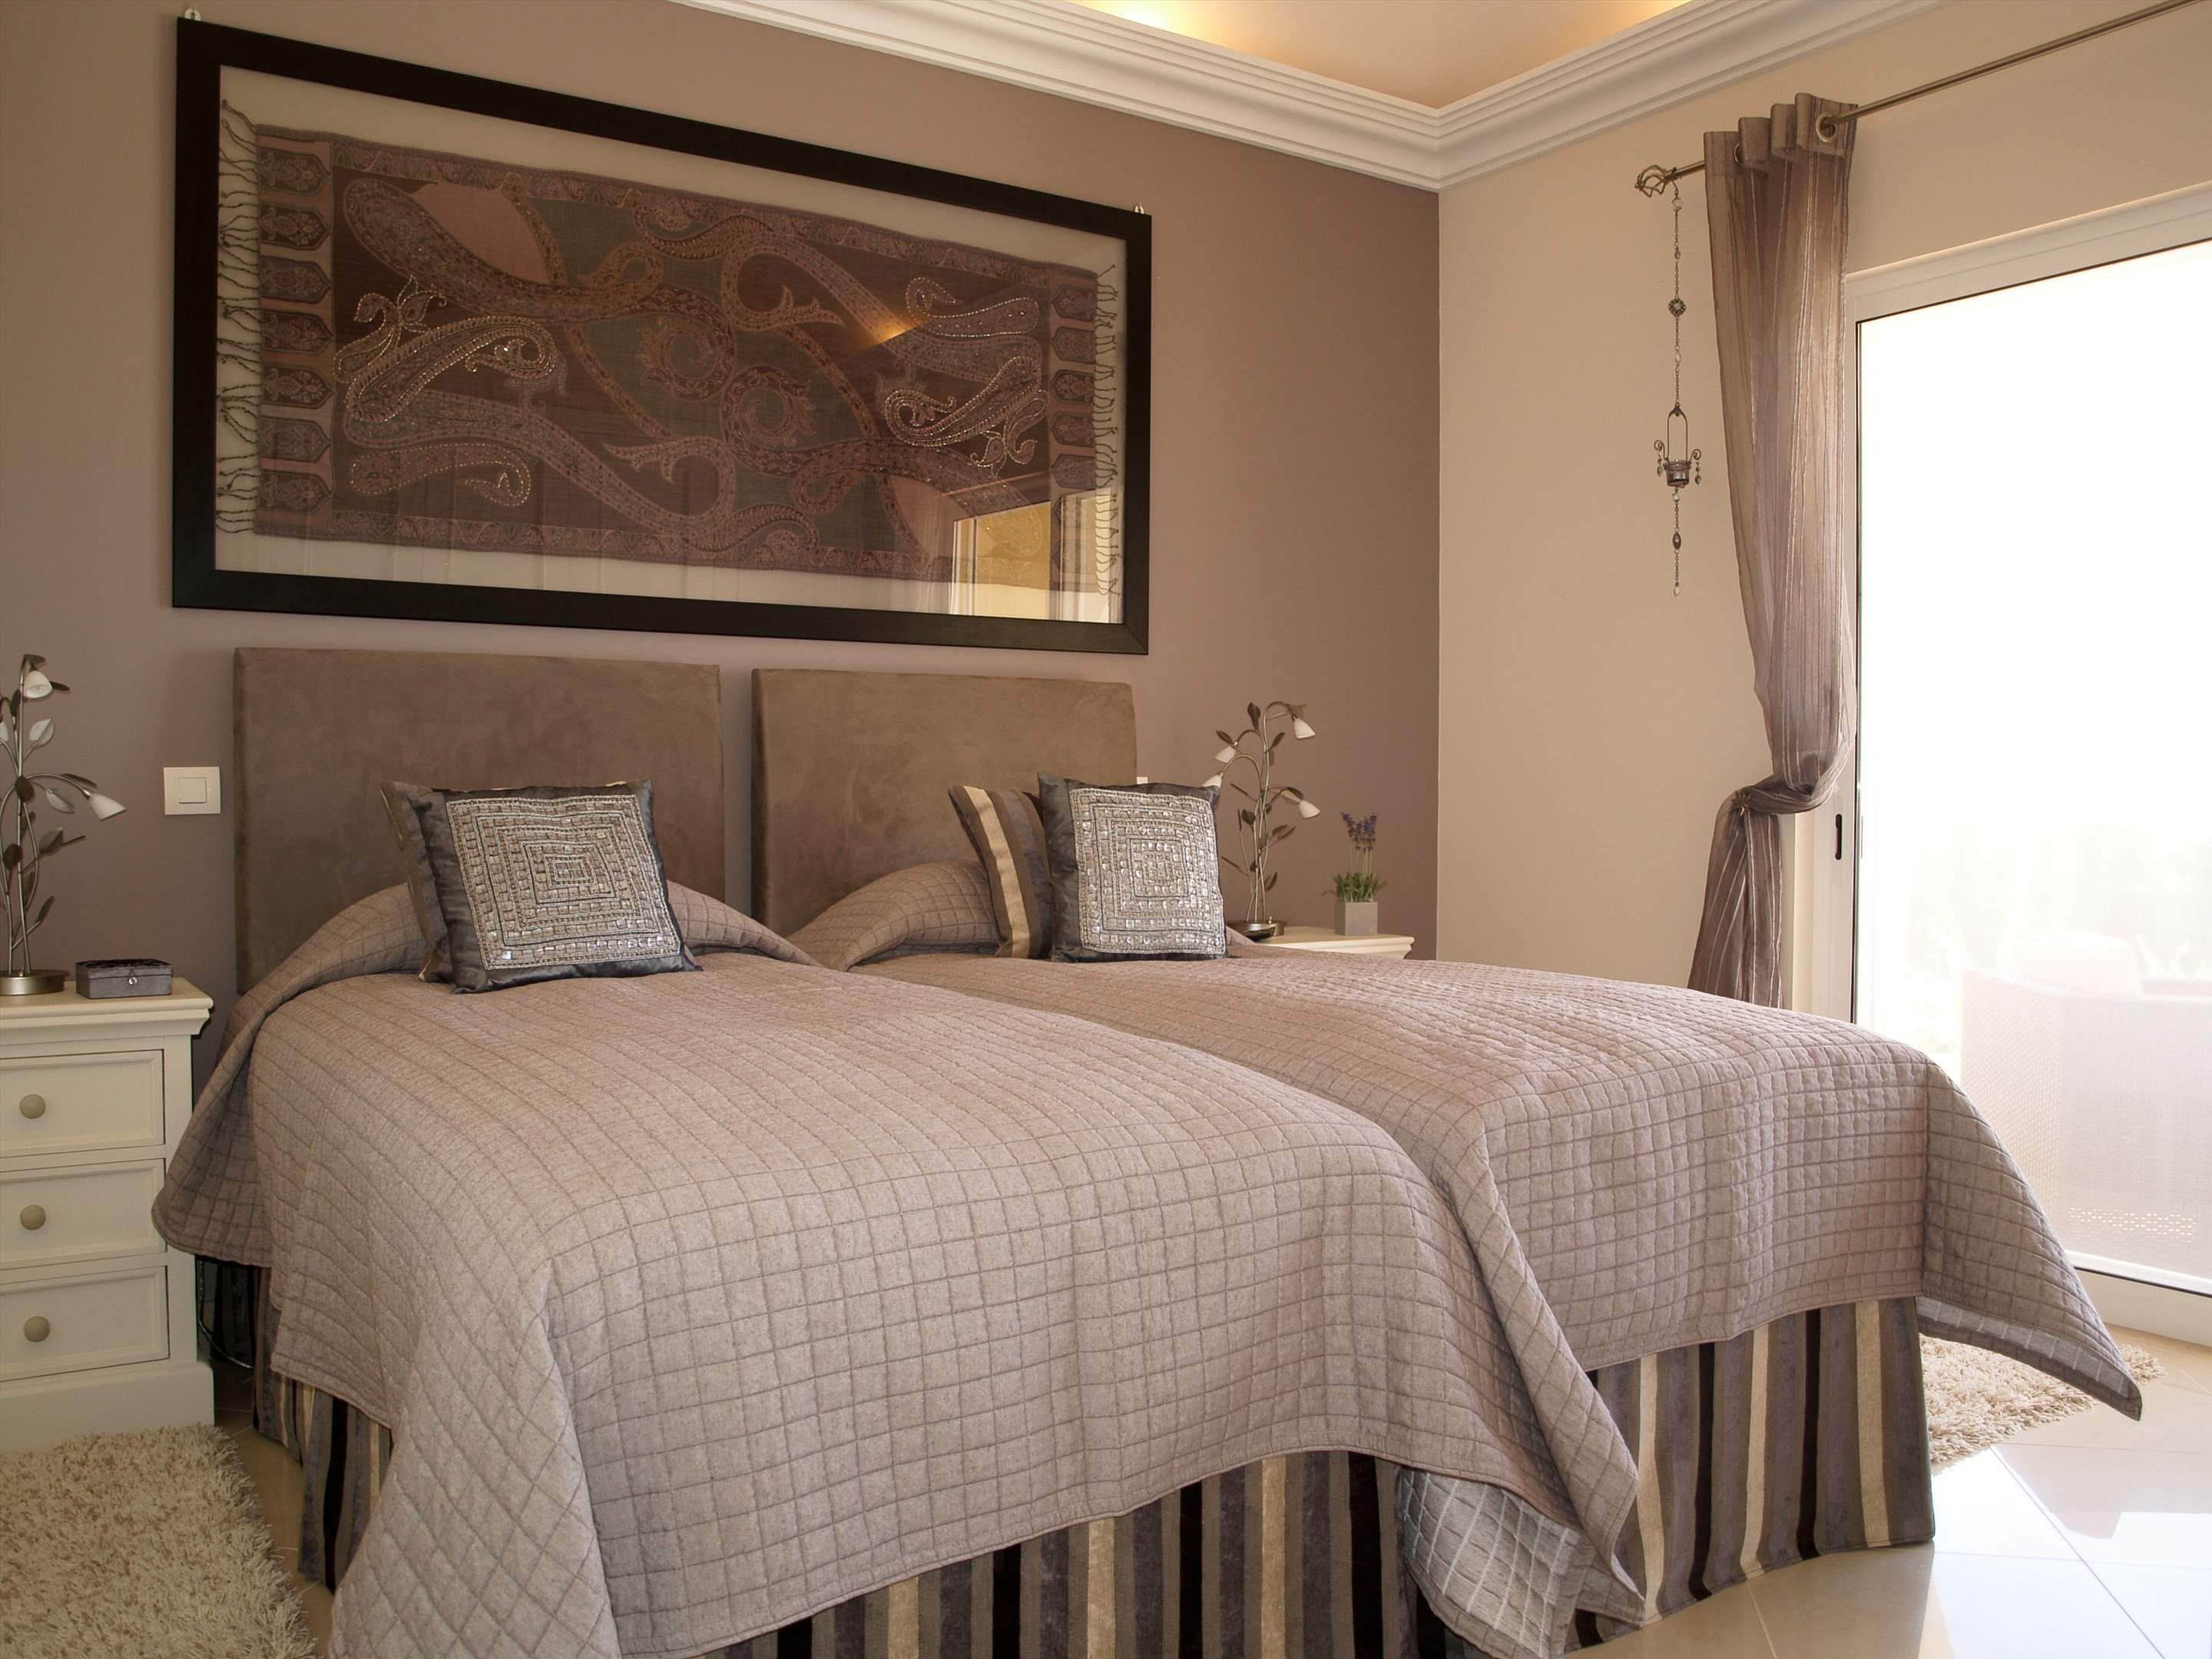 Martinhal Luxury Villa No.44, 3 bedroom villa in Martinhal Sagres, Algarve Photo #15